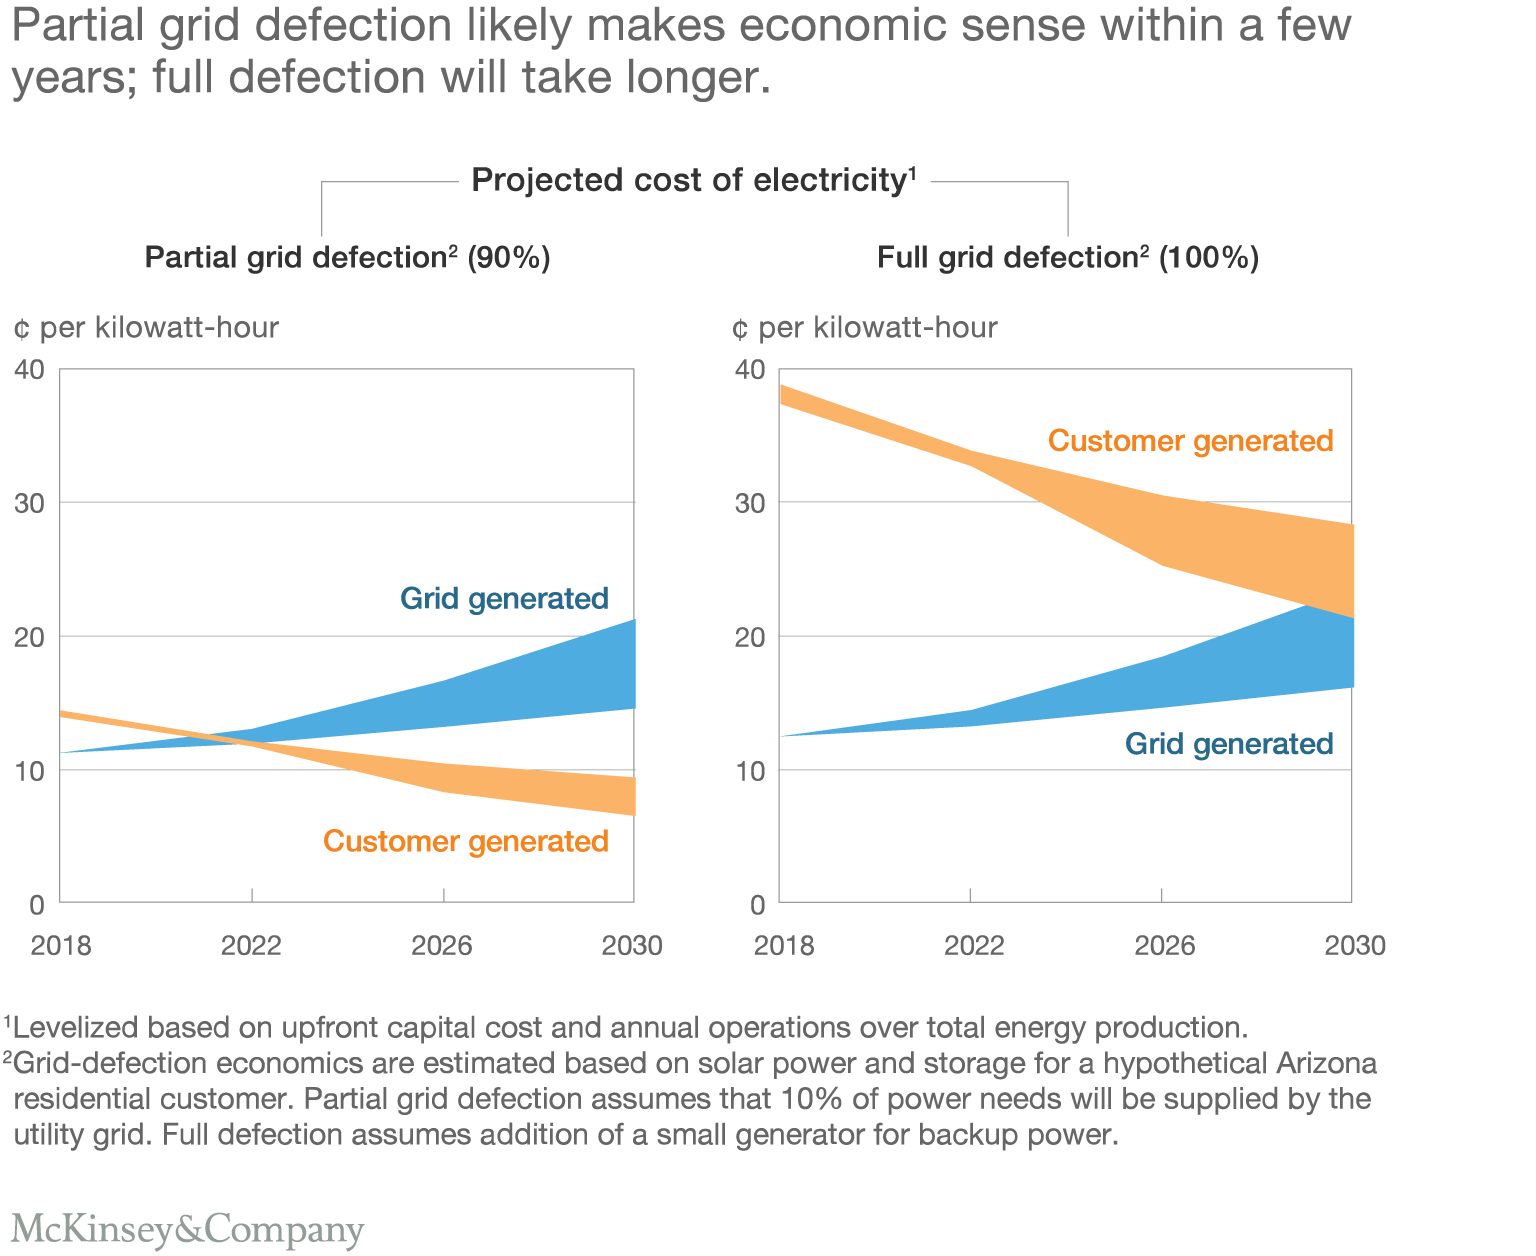 Partial grid defection likely makes economic sense within a few years; full defection will take longer.